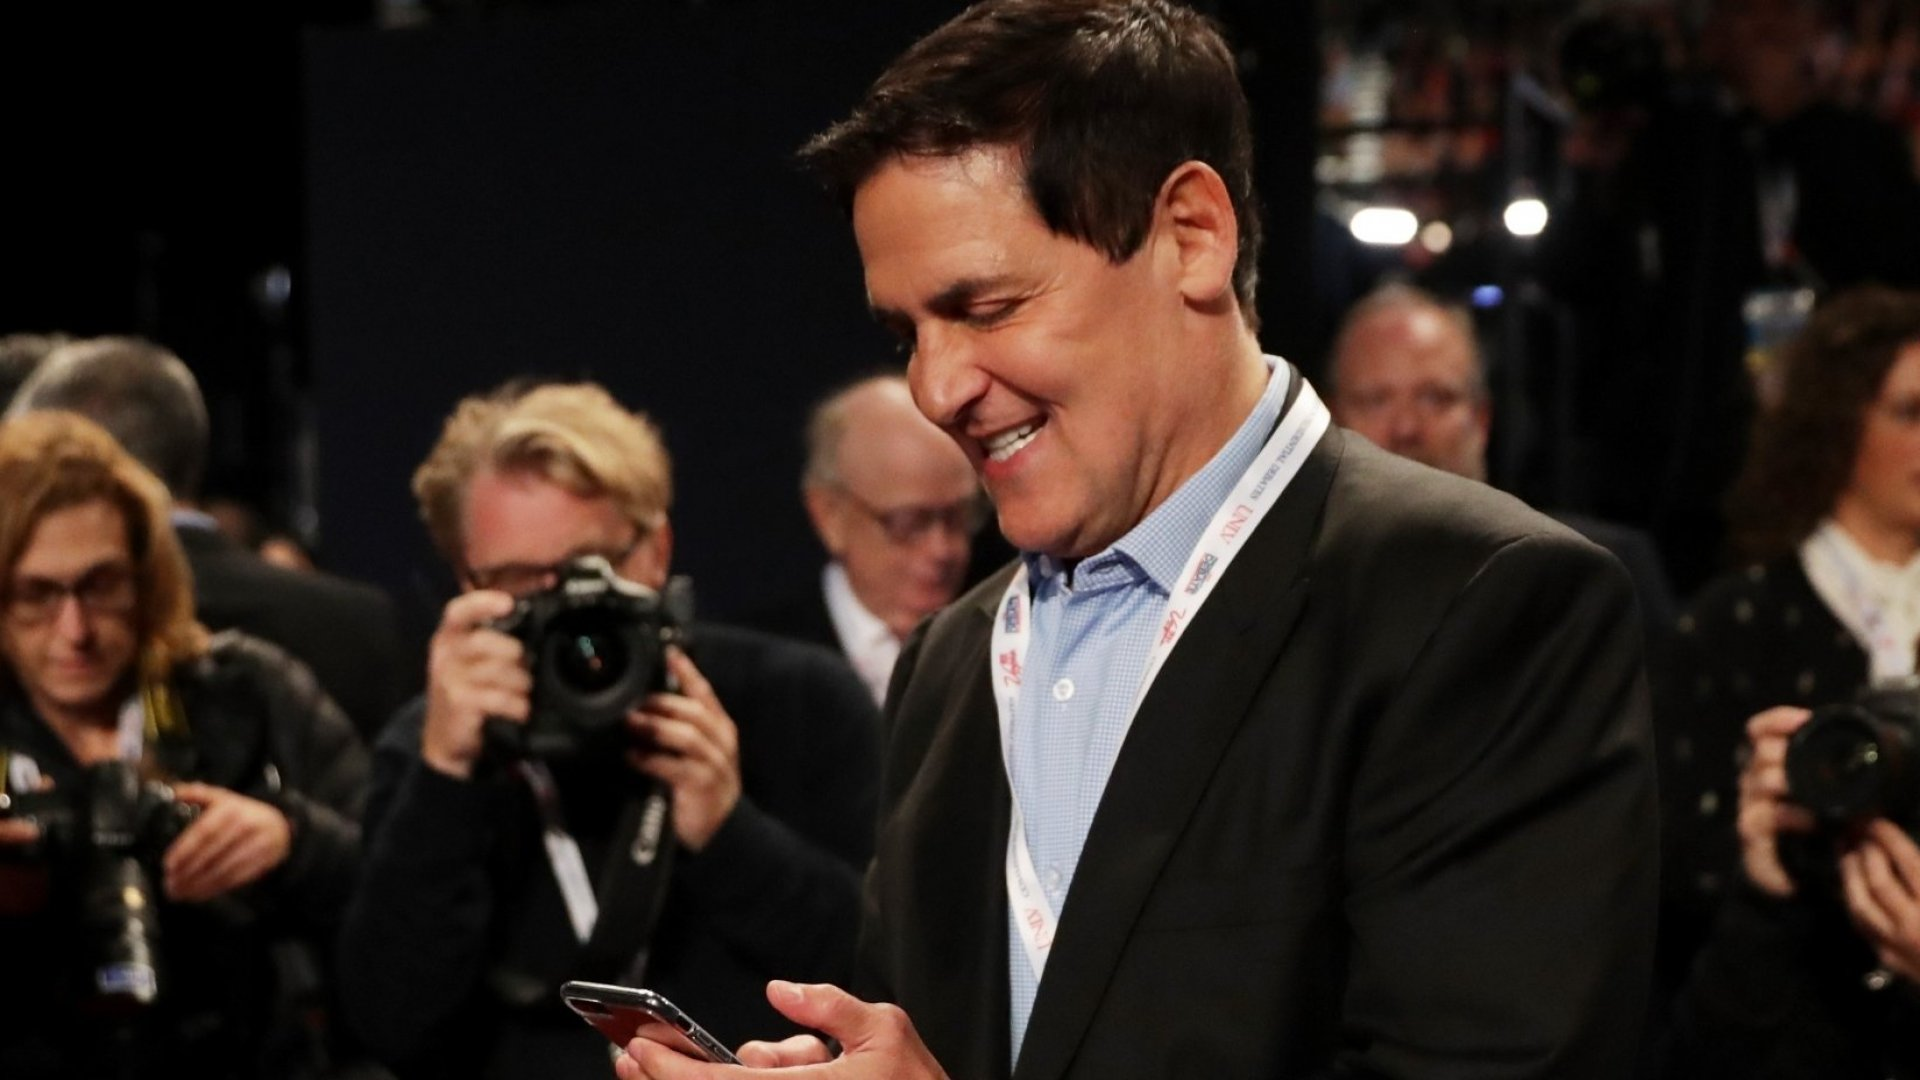 Dallas Mavericks owner Mark Cuban recently took to Twitter to lecture Democrats on negotiating with President Trump.